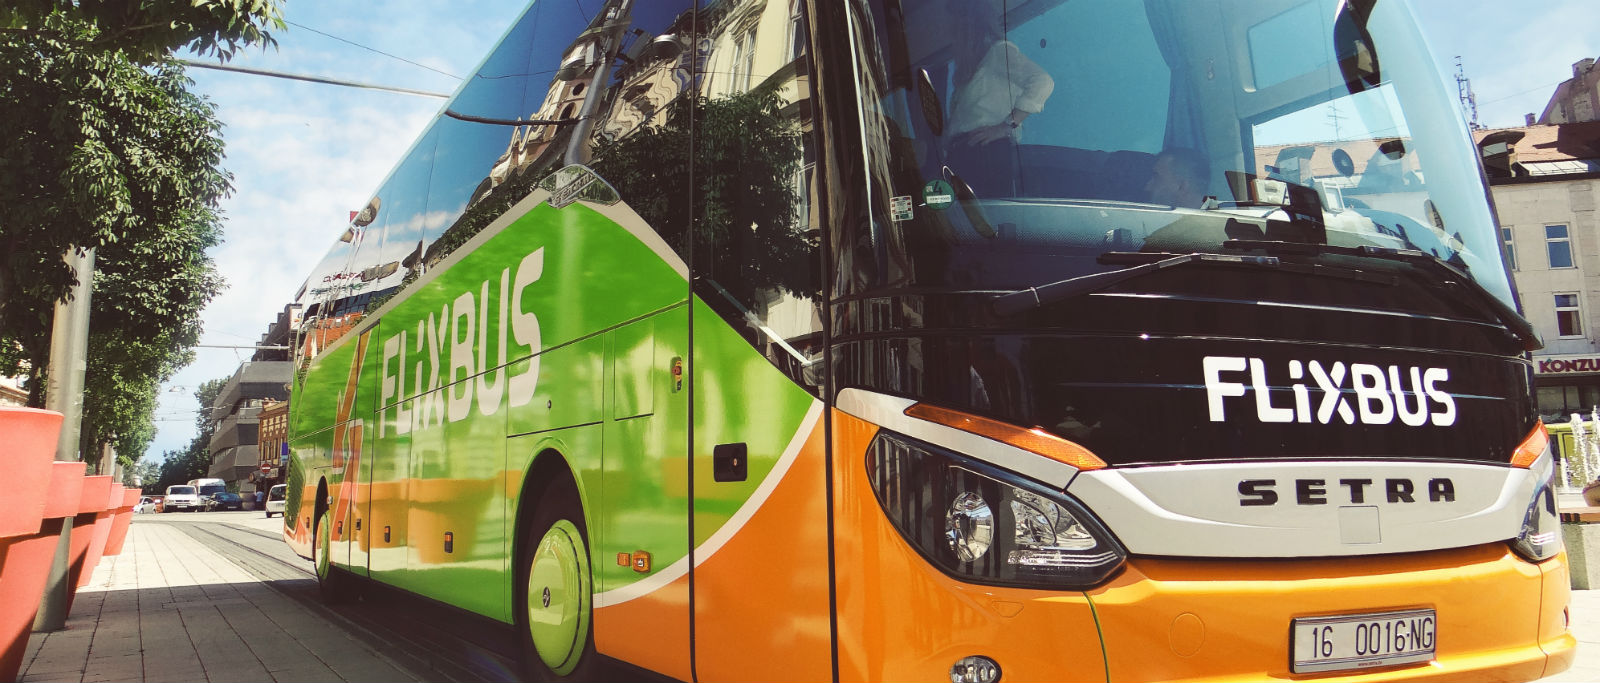 Bus Berlin Frankfurt from 1199 FlixBus